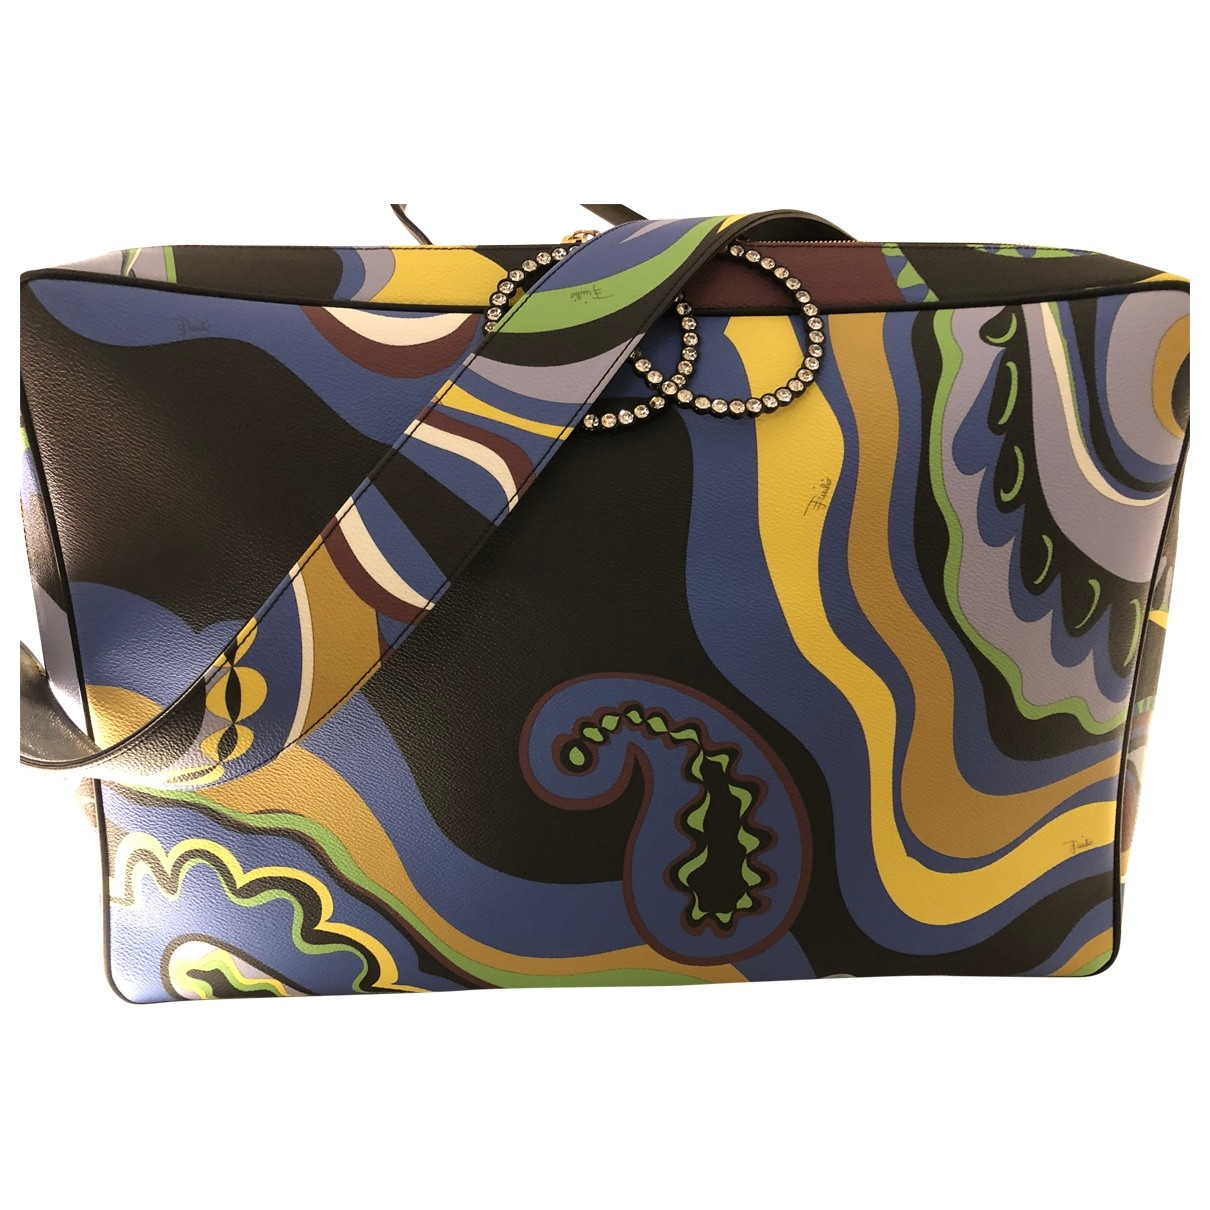 Emilio Pucci \N Multicolour Travel bag for Women \N